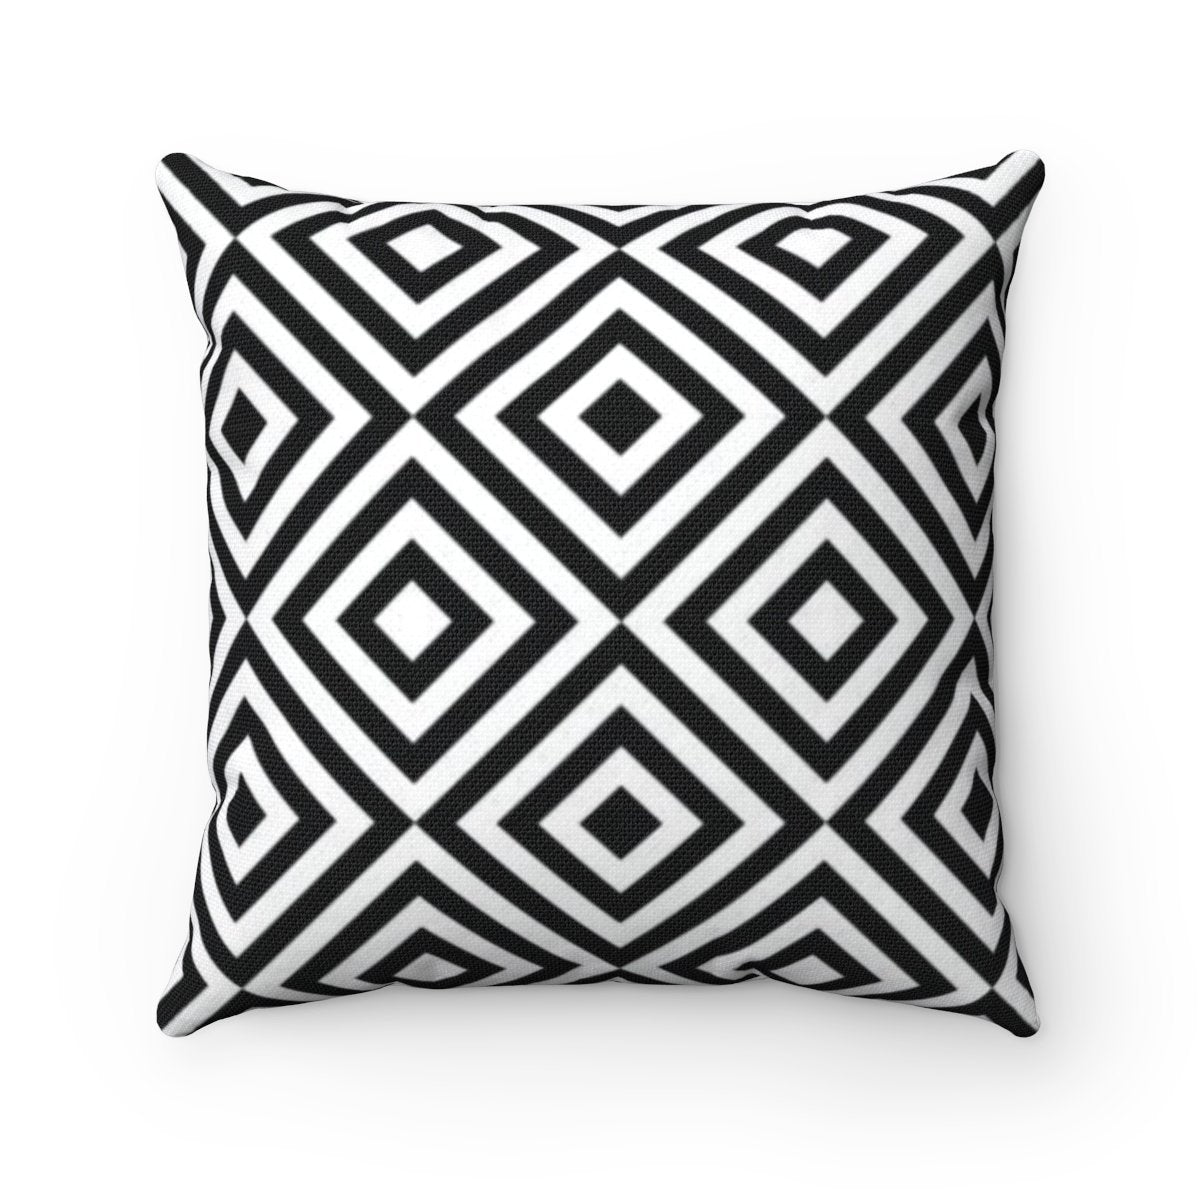 Black and White abstract decorative cushion cover-Home Decor - Decorative Accents - Pillows & Throws - Decorative Pillows-Maison d'Elite-14x14-Très Elite